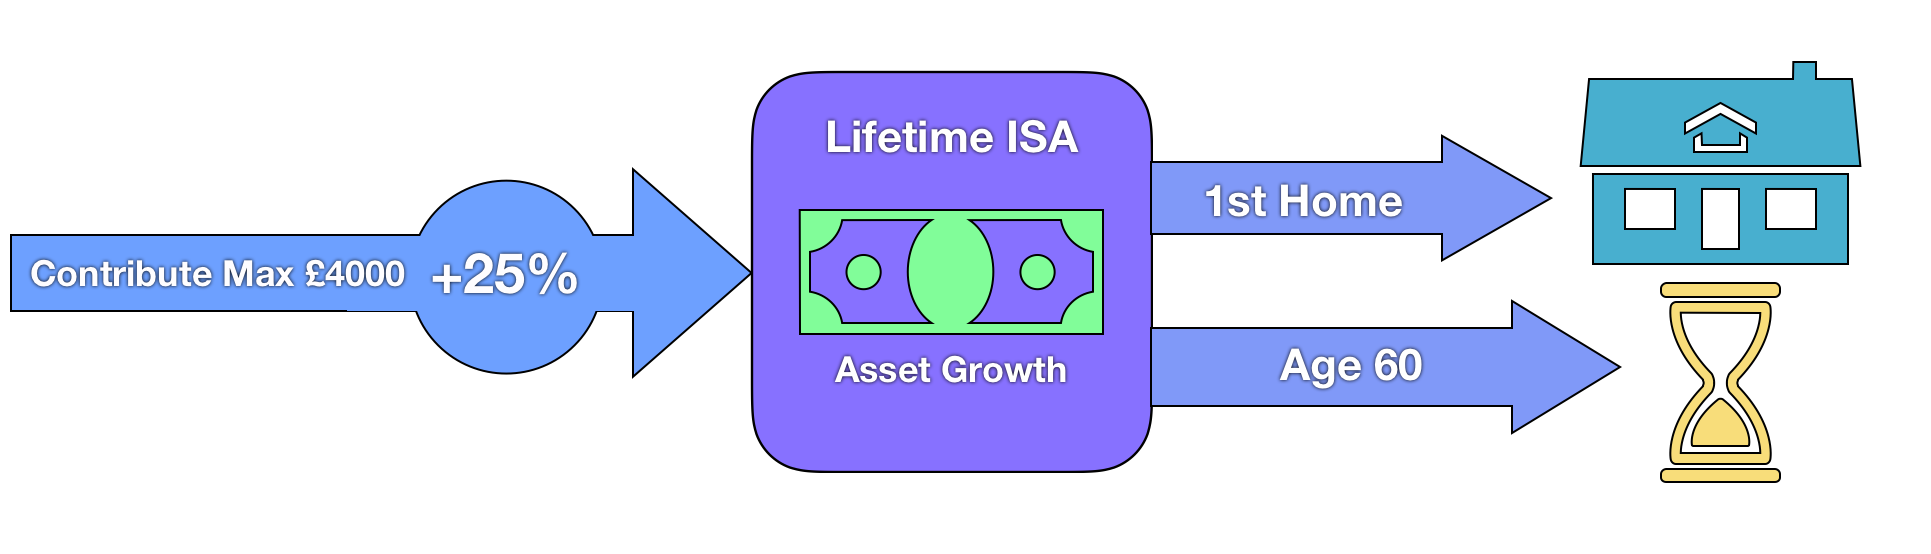 Lifetime ISA Chart Guide - Paying in and withdrawals